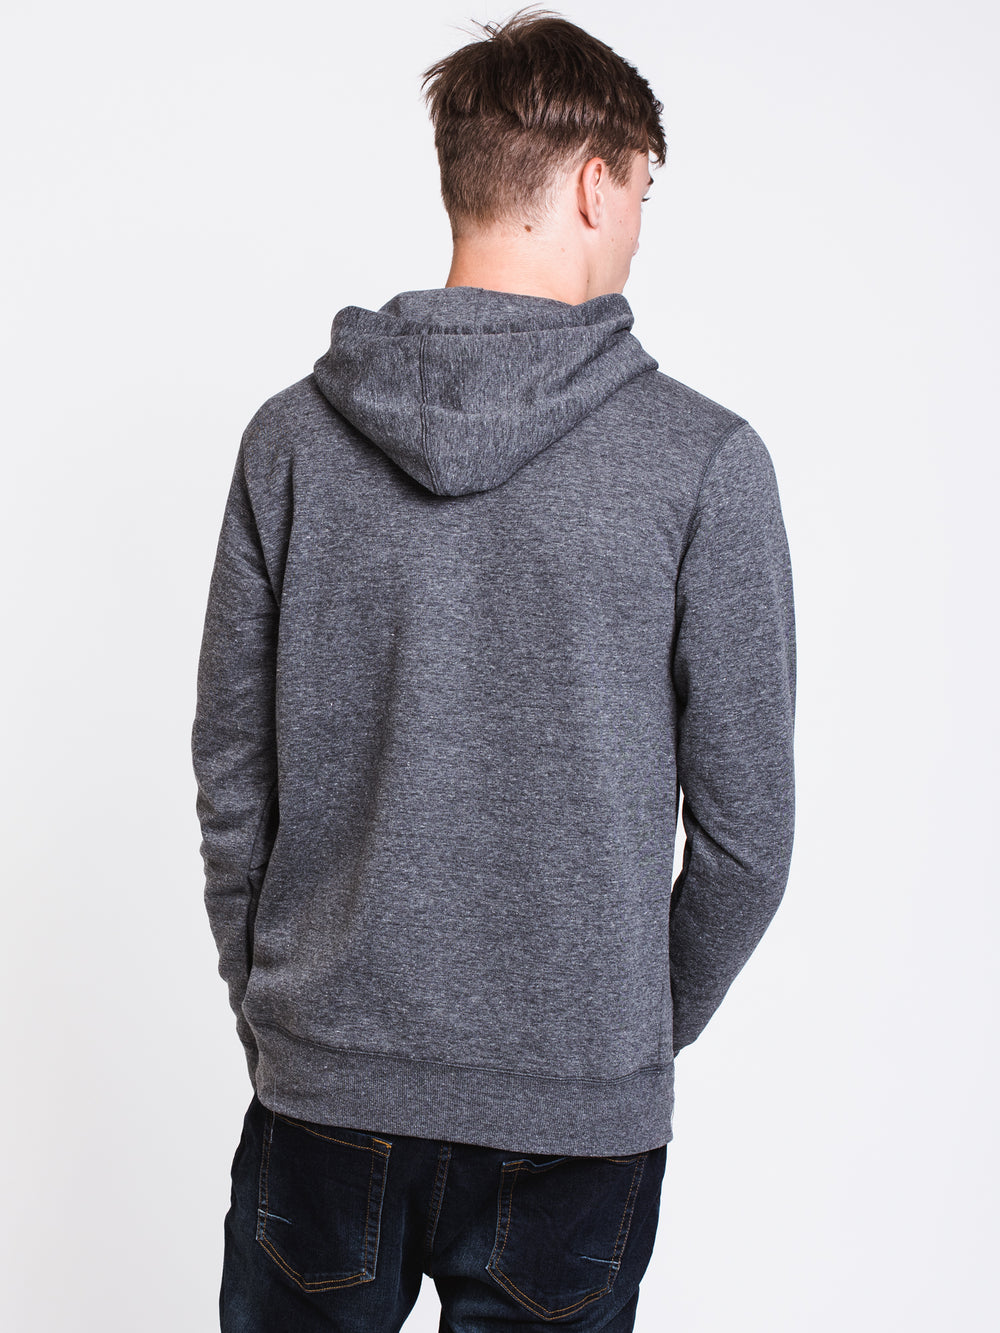 MENS ALL DAY PULLOVER HOODIE - BLACK